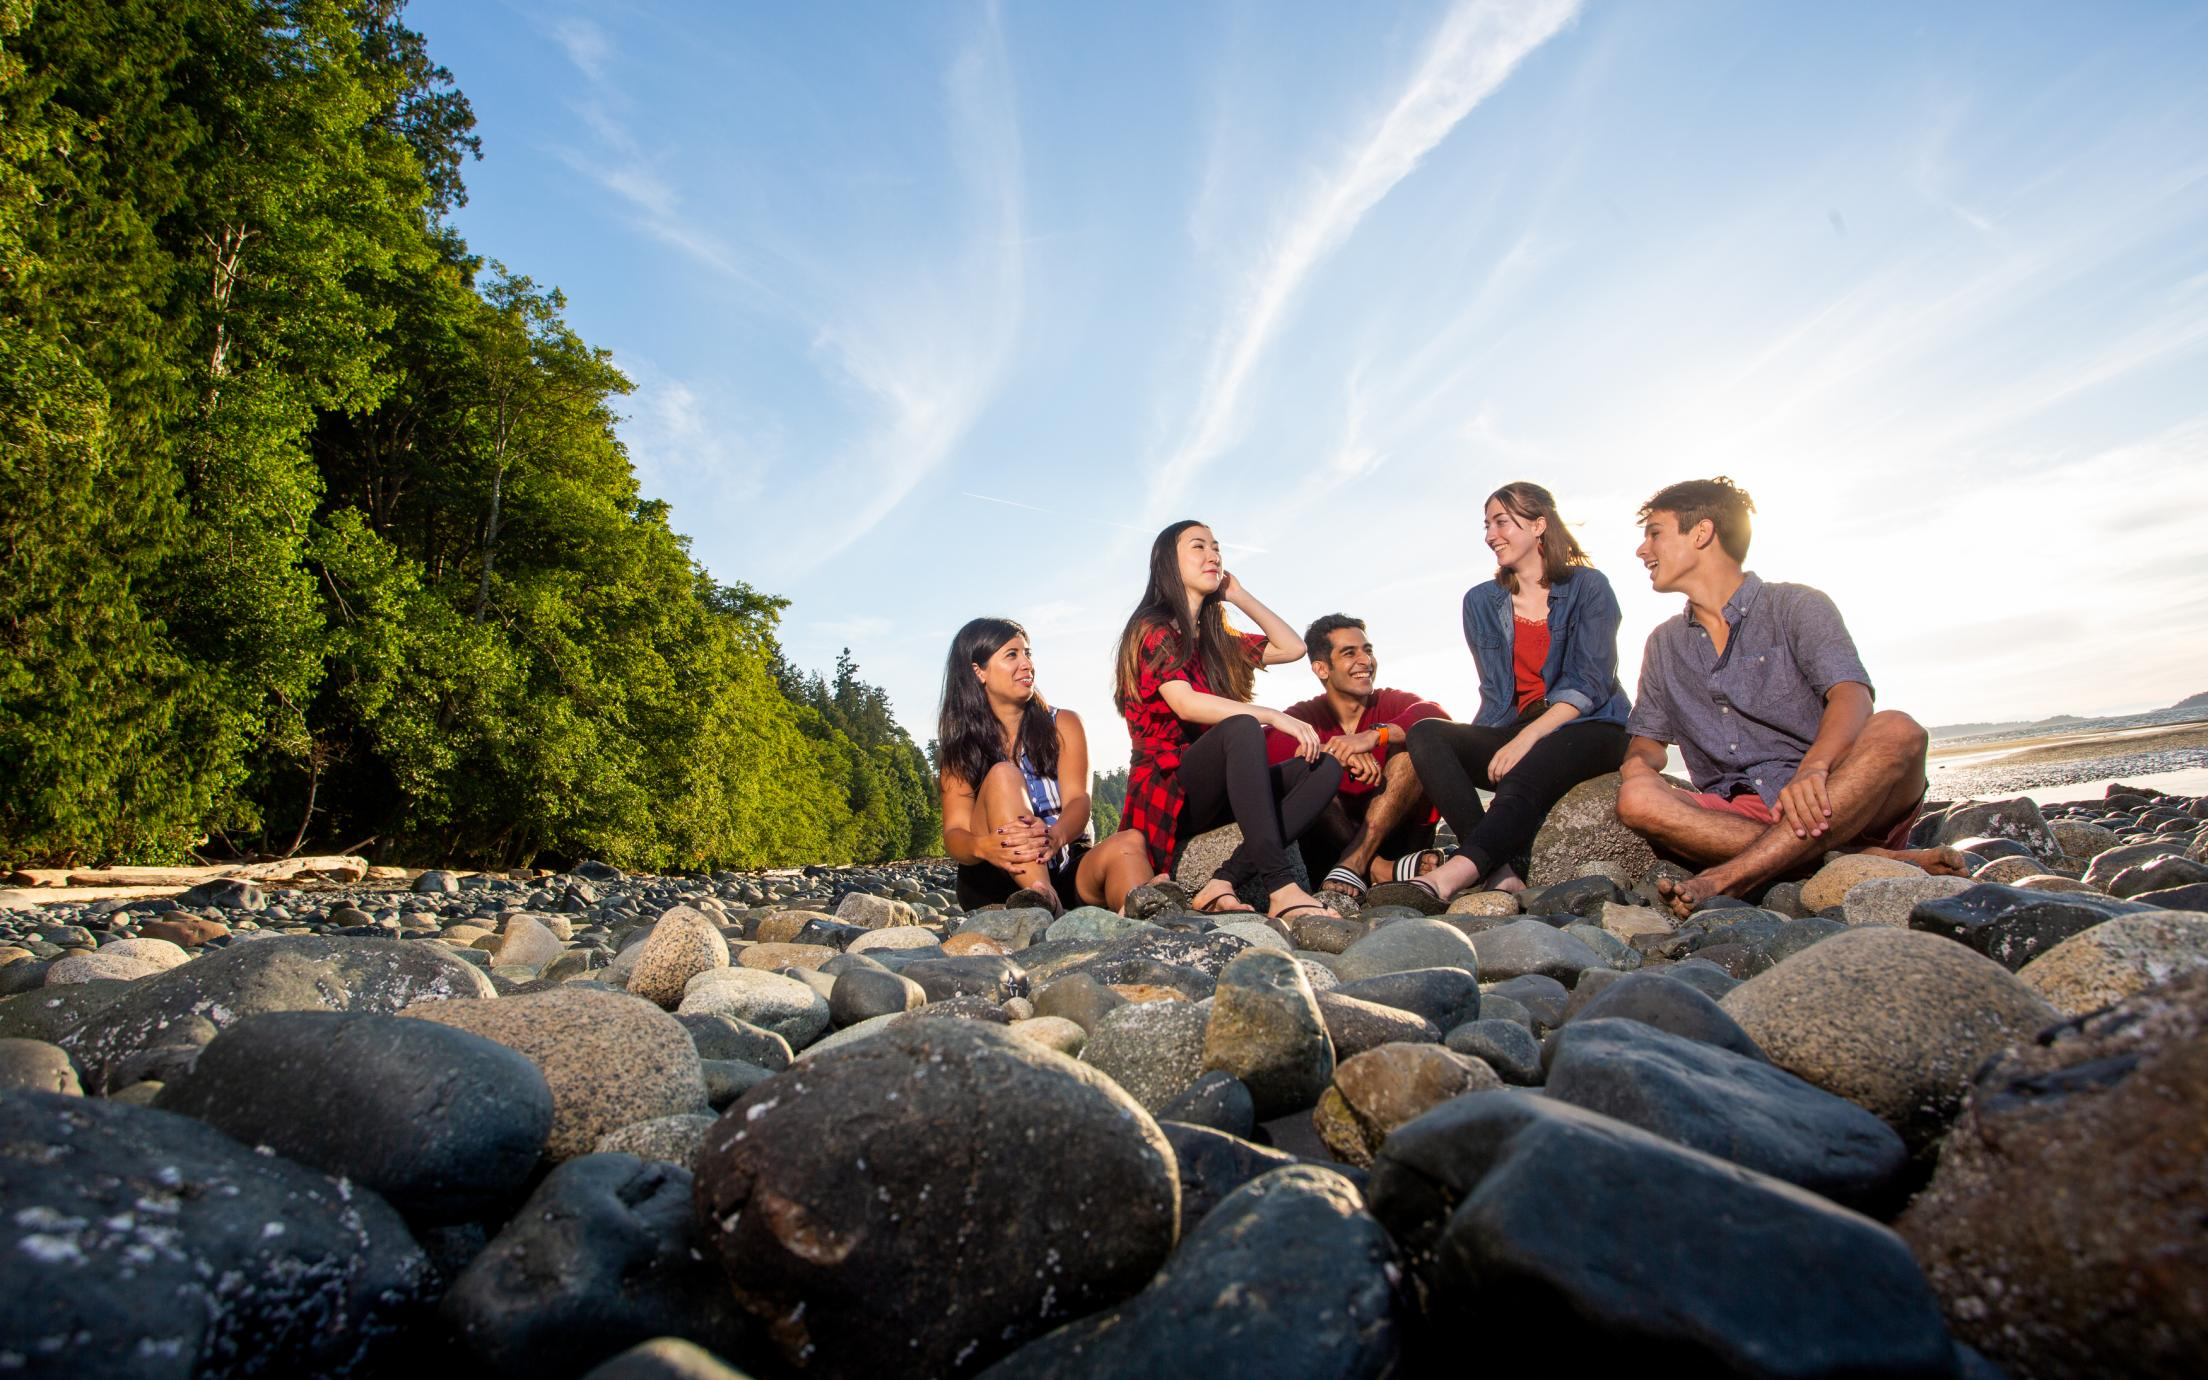 VIU Students Recreation at the Beach